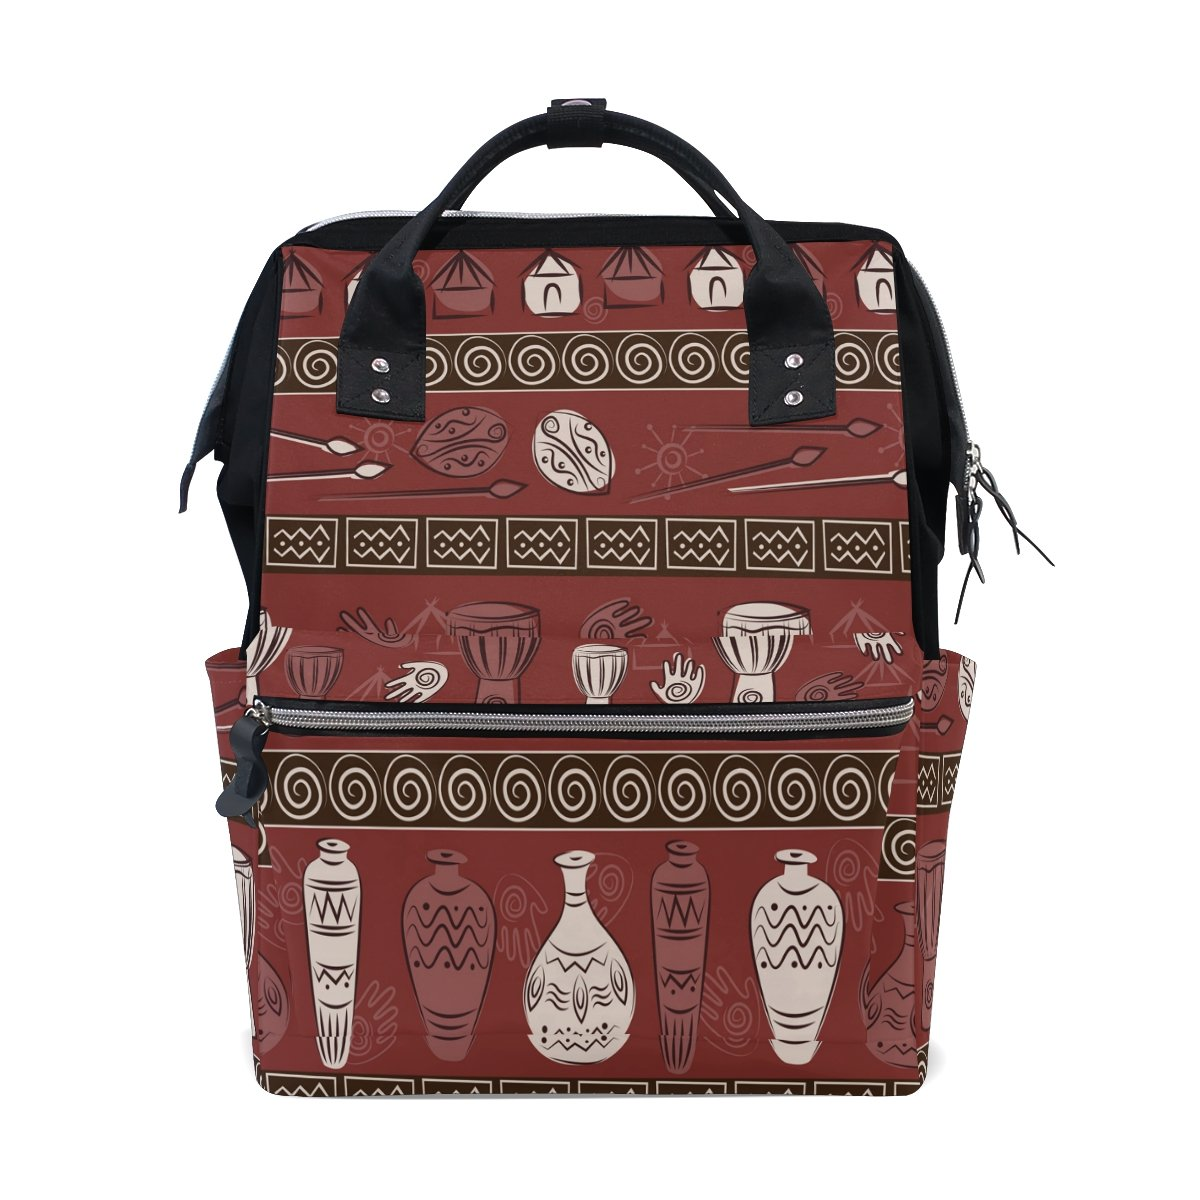 Diaper Bags Backpack Purse Mummy Backpack Fashion Mummy Maternity Nappy Bag Cool Cute Travel Backpack Laptop Backpack with African Floral Daypack for Women Girls Kids